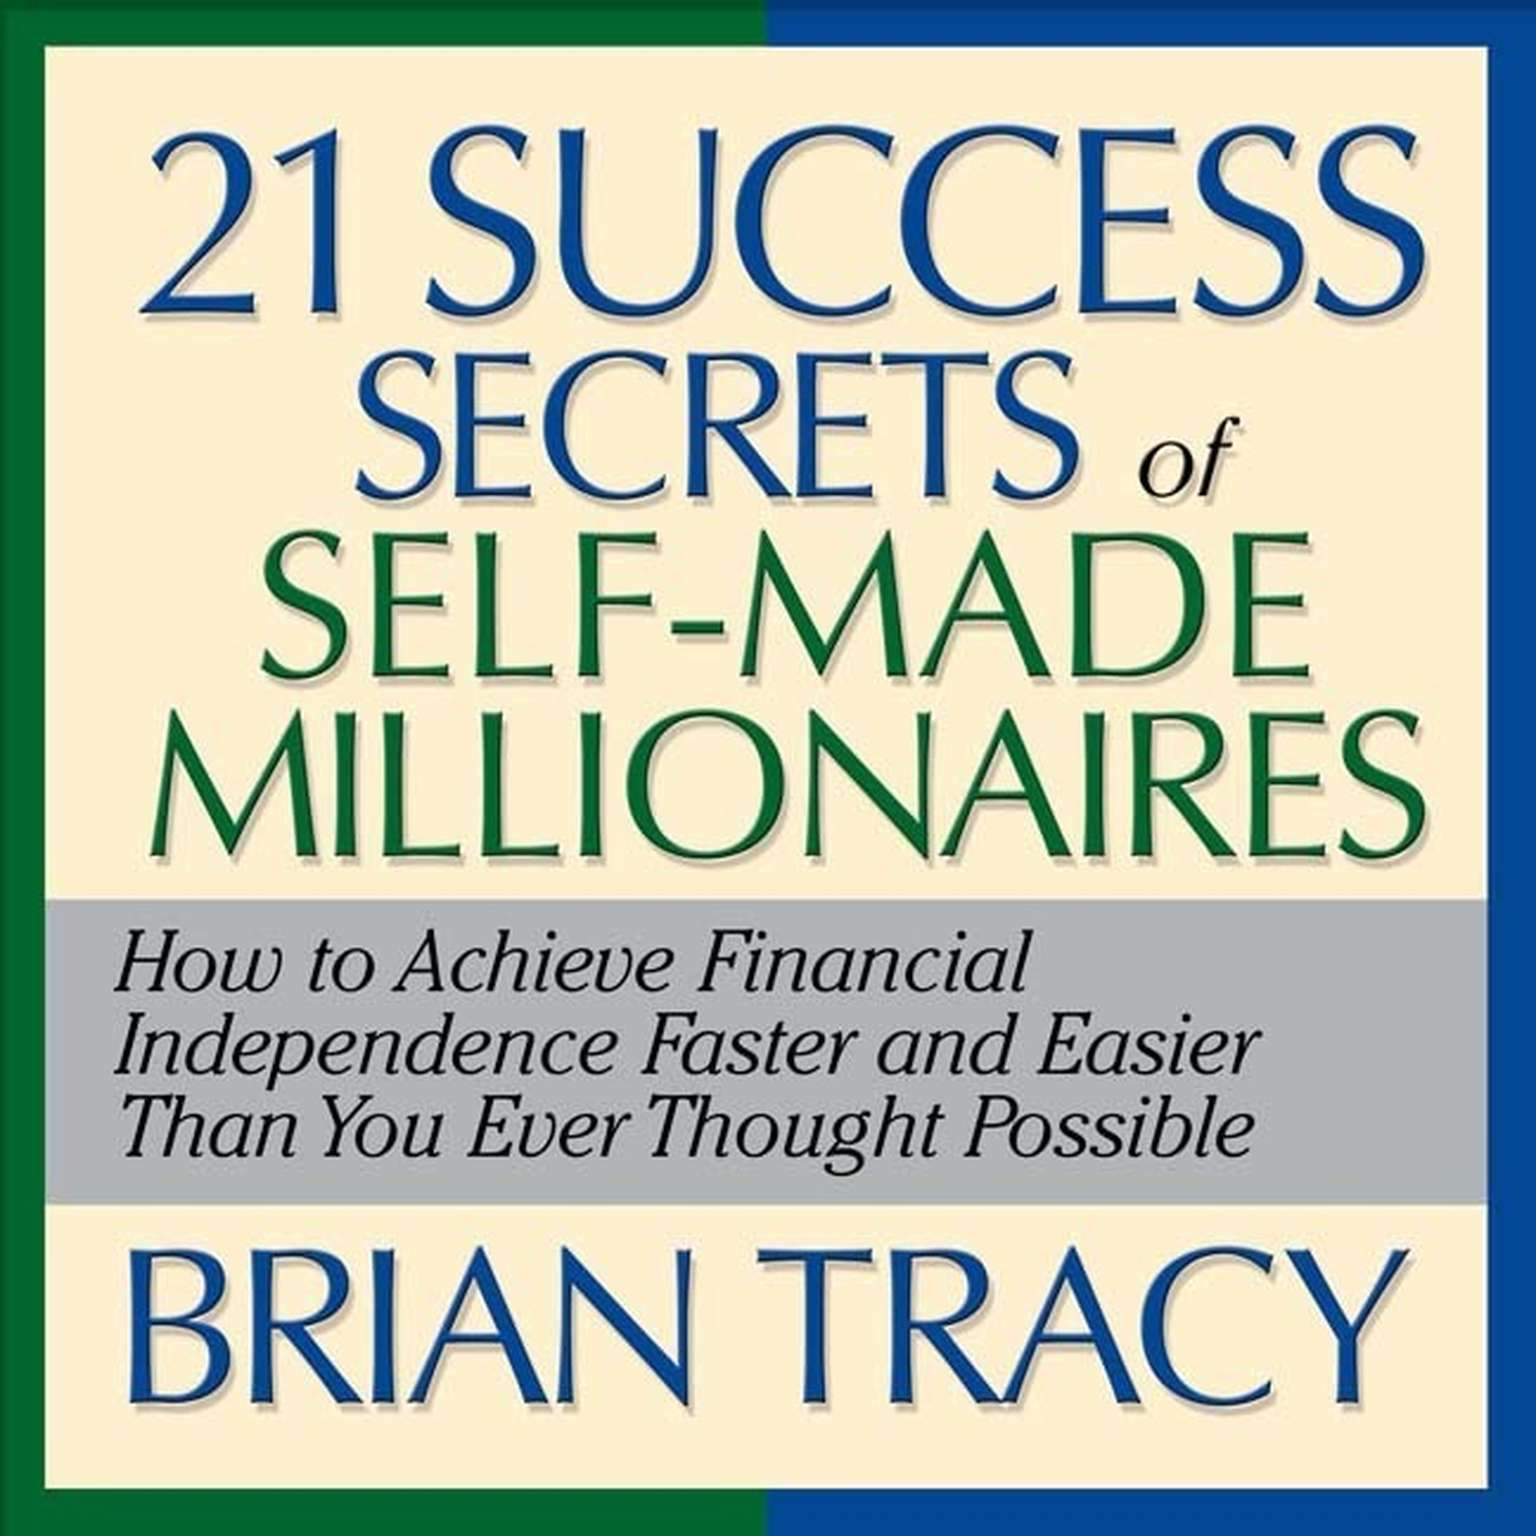 Printable The 21 Success Secrets Self-Made Millionaires: How to Achieve Financial Independence Faster and Easier Than You Ever Thought Possible Audiobook Cover Art